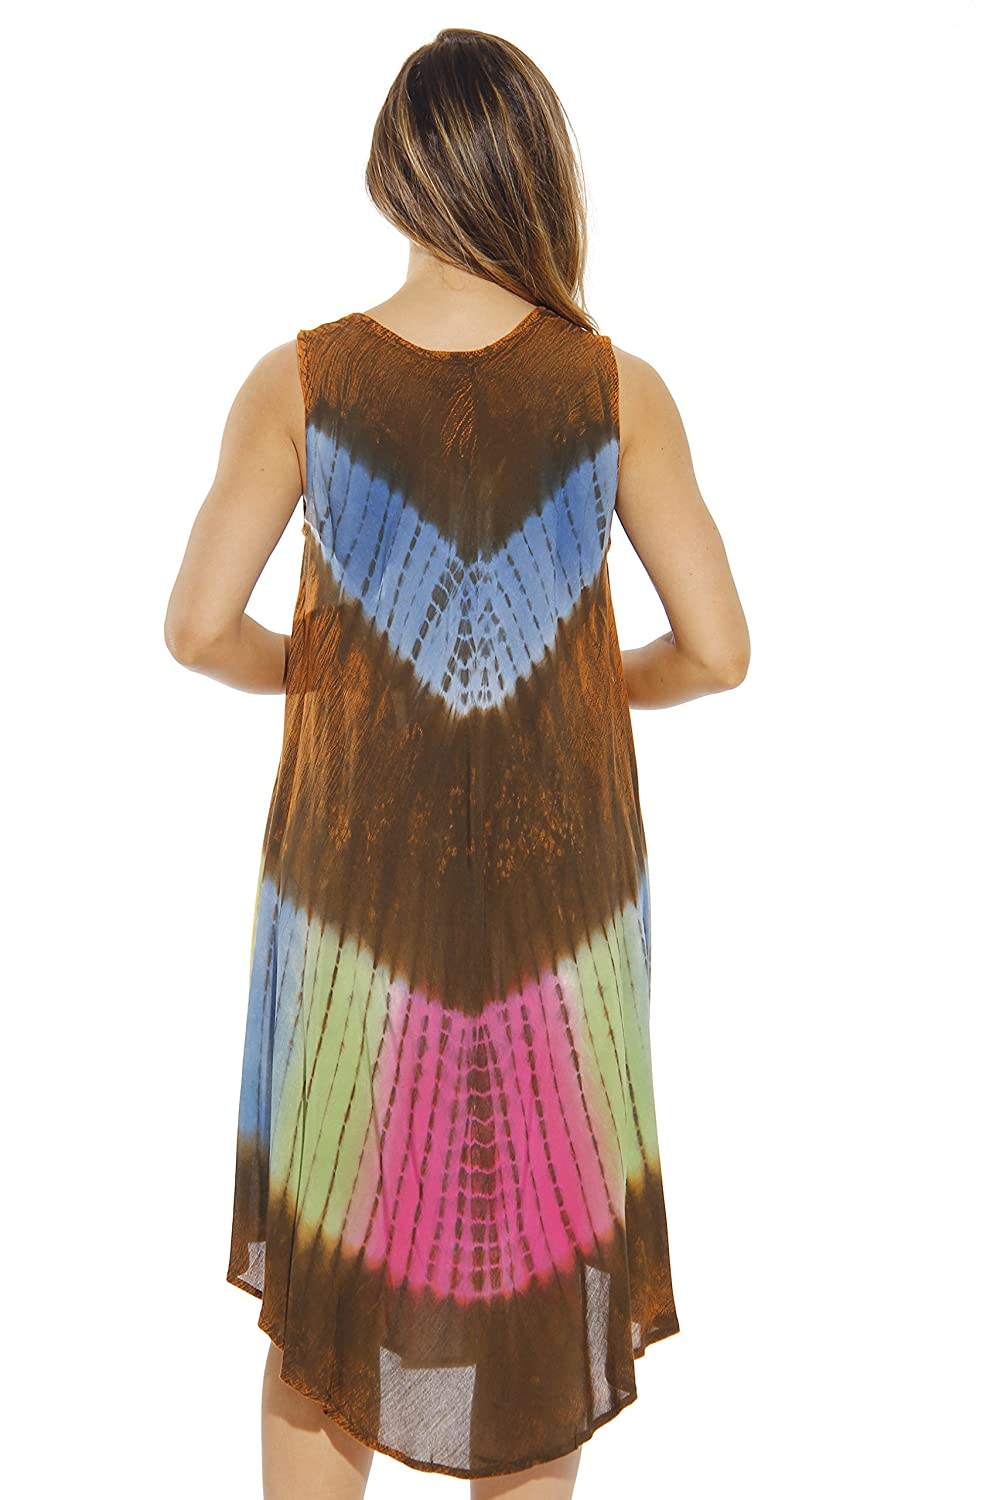 335828a6d108c Riviera Sun Summer Dresses Tie Dye Embroidered Beach Swimsuit Cover ...